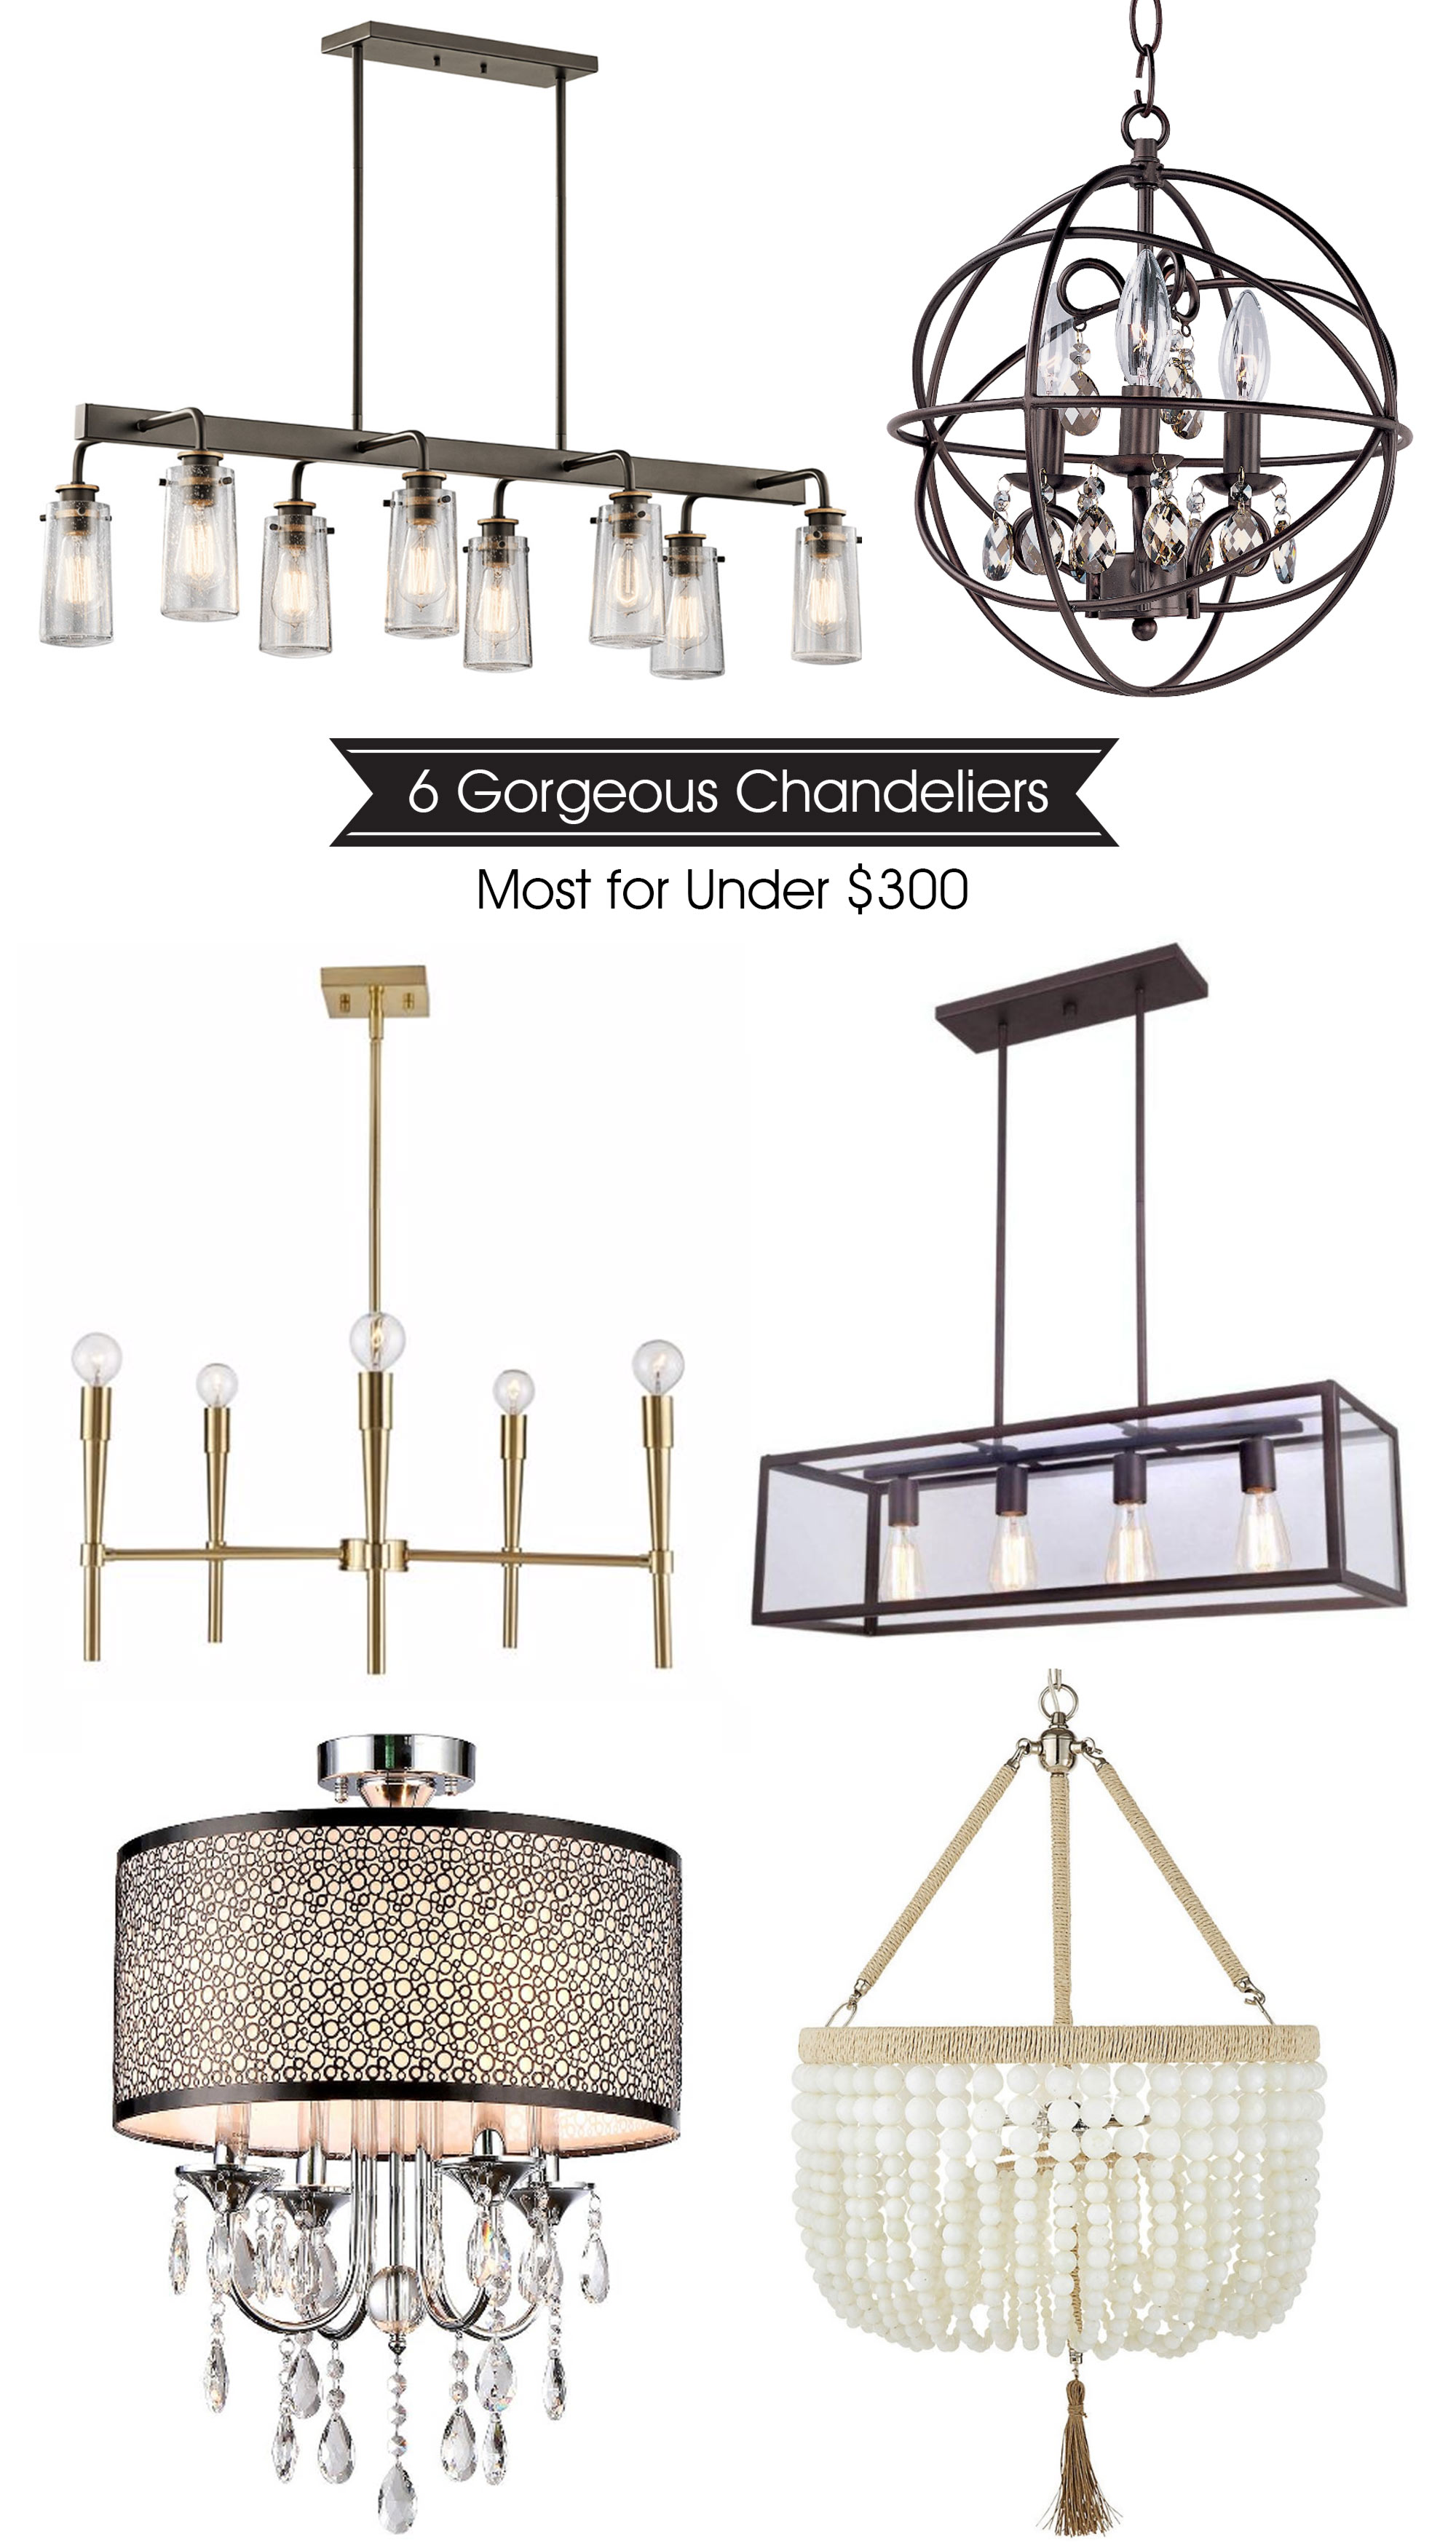 Great  chandeliers under